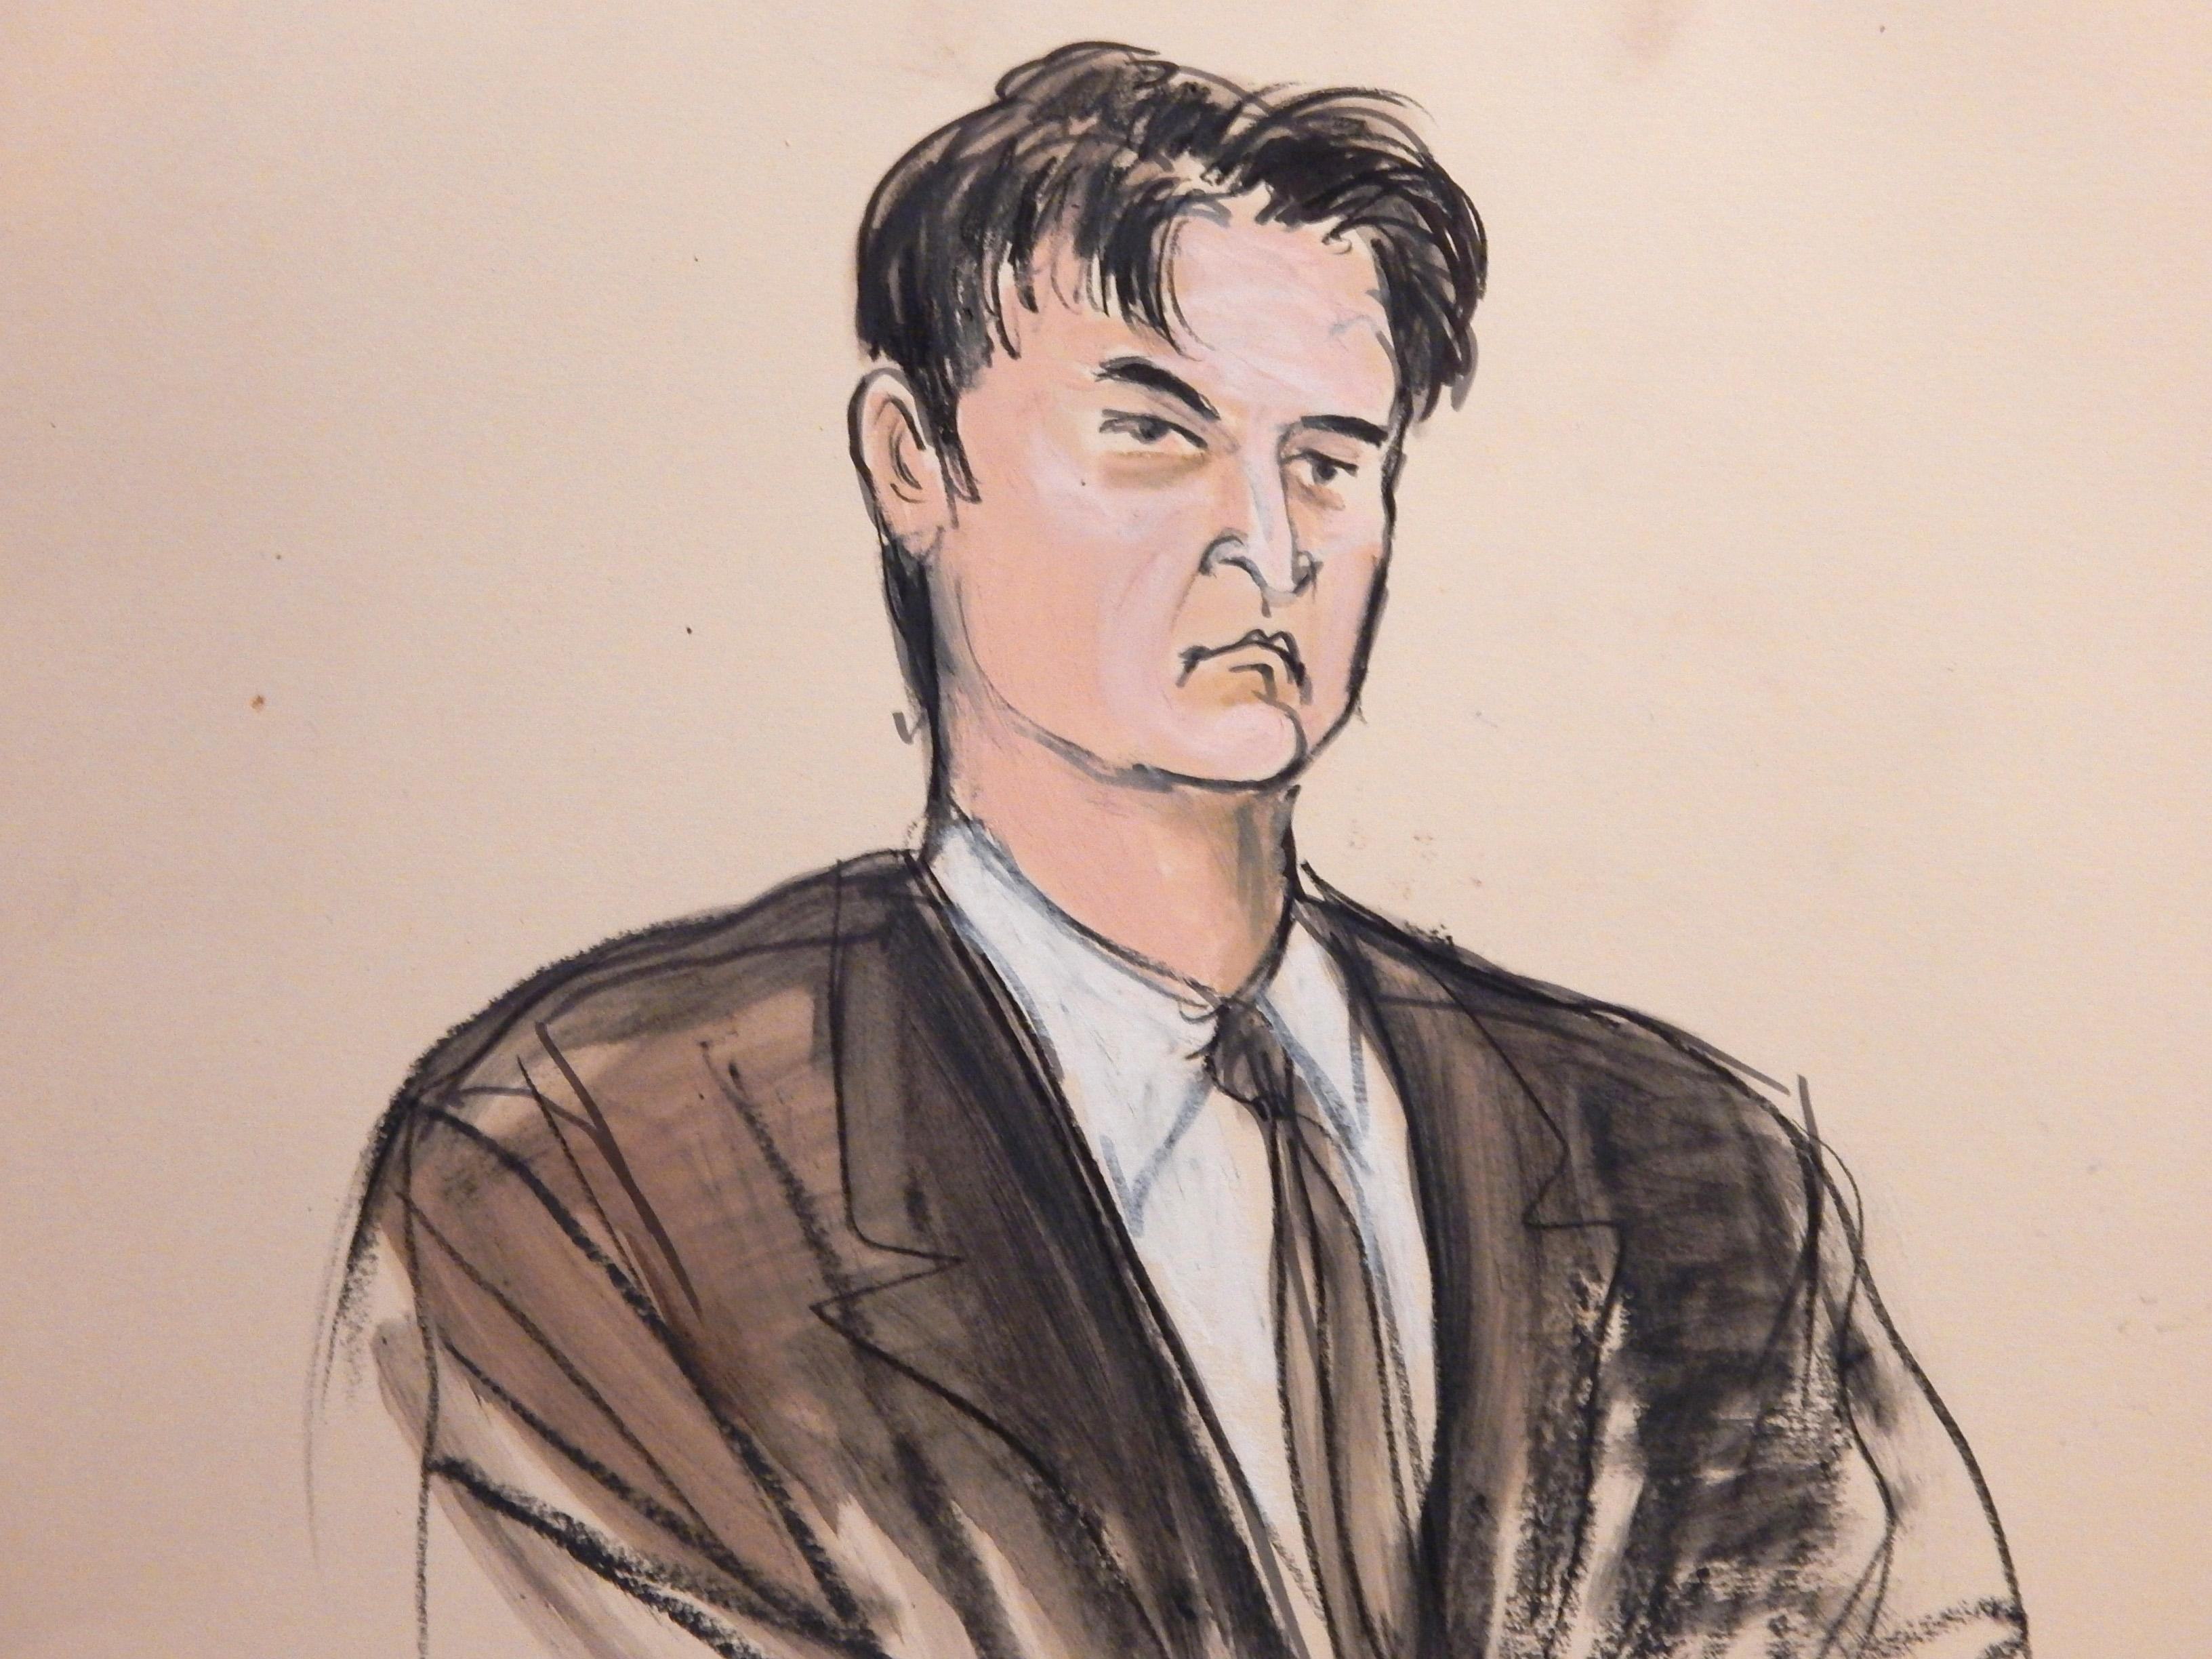 At least 20 years in prison awaits Silk Road founder